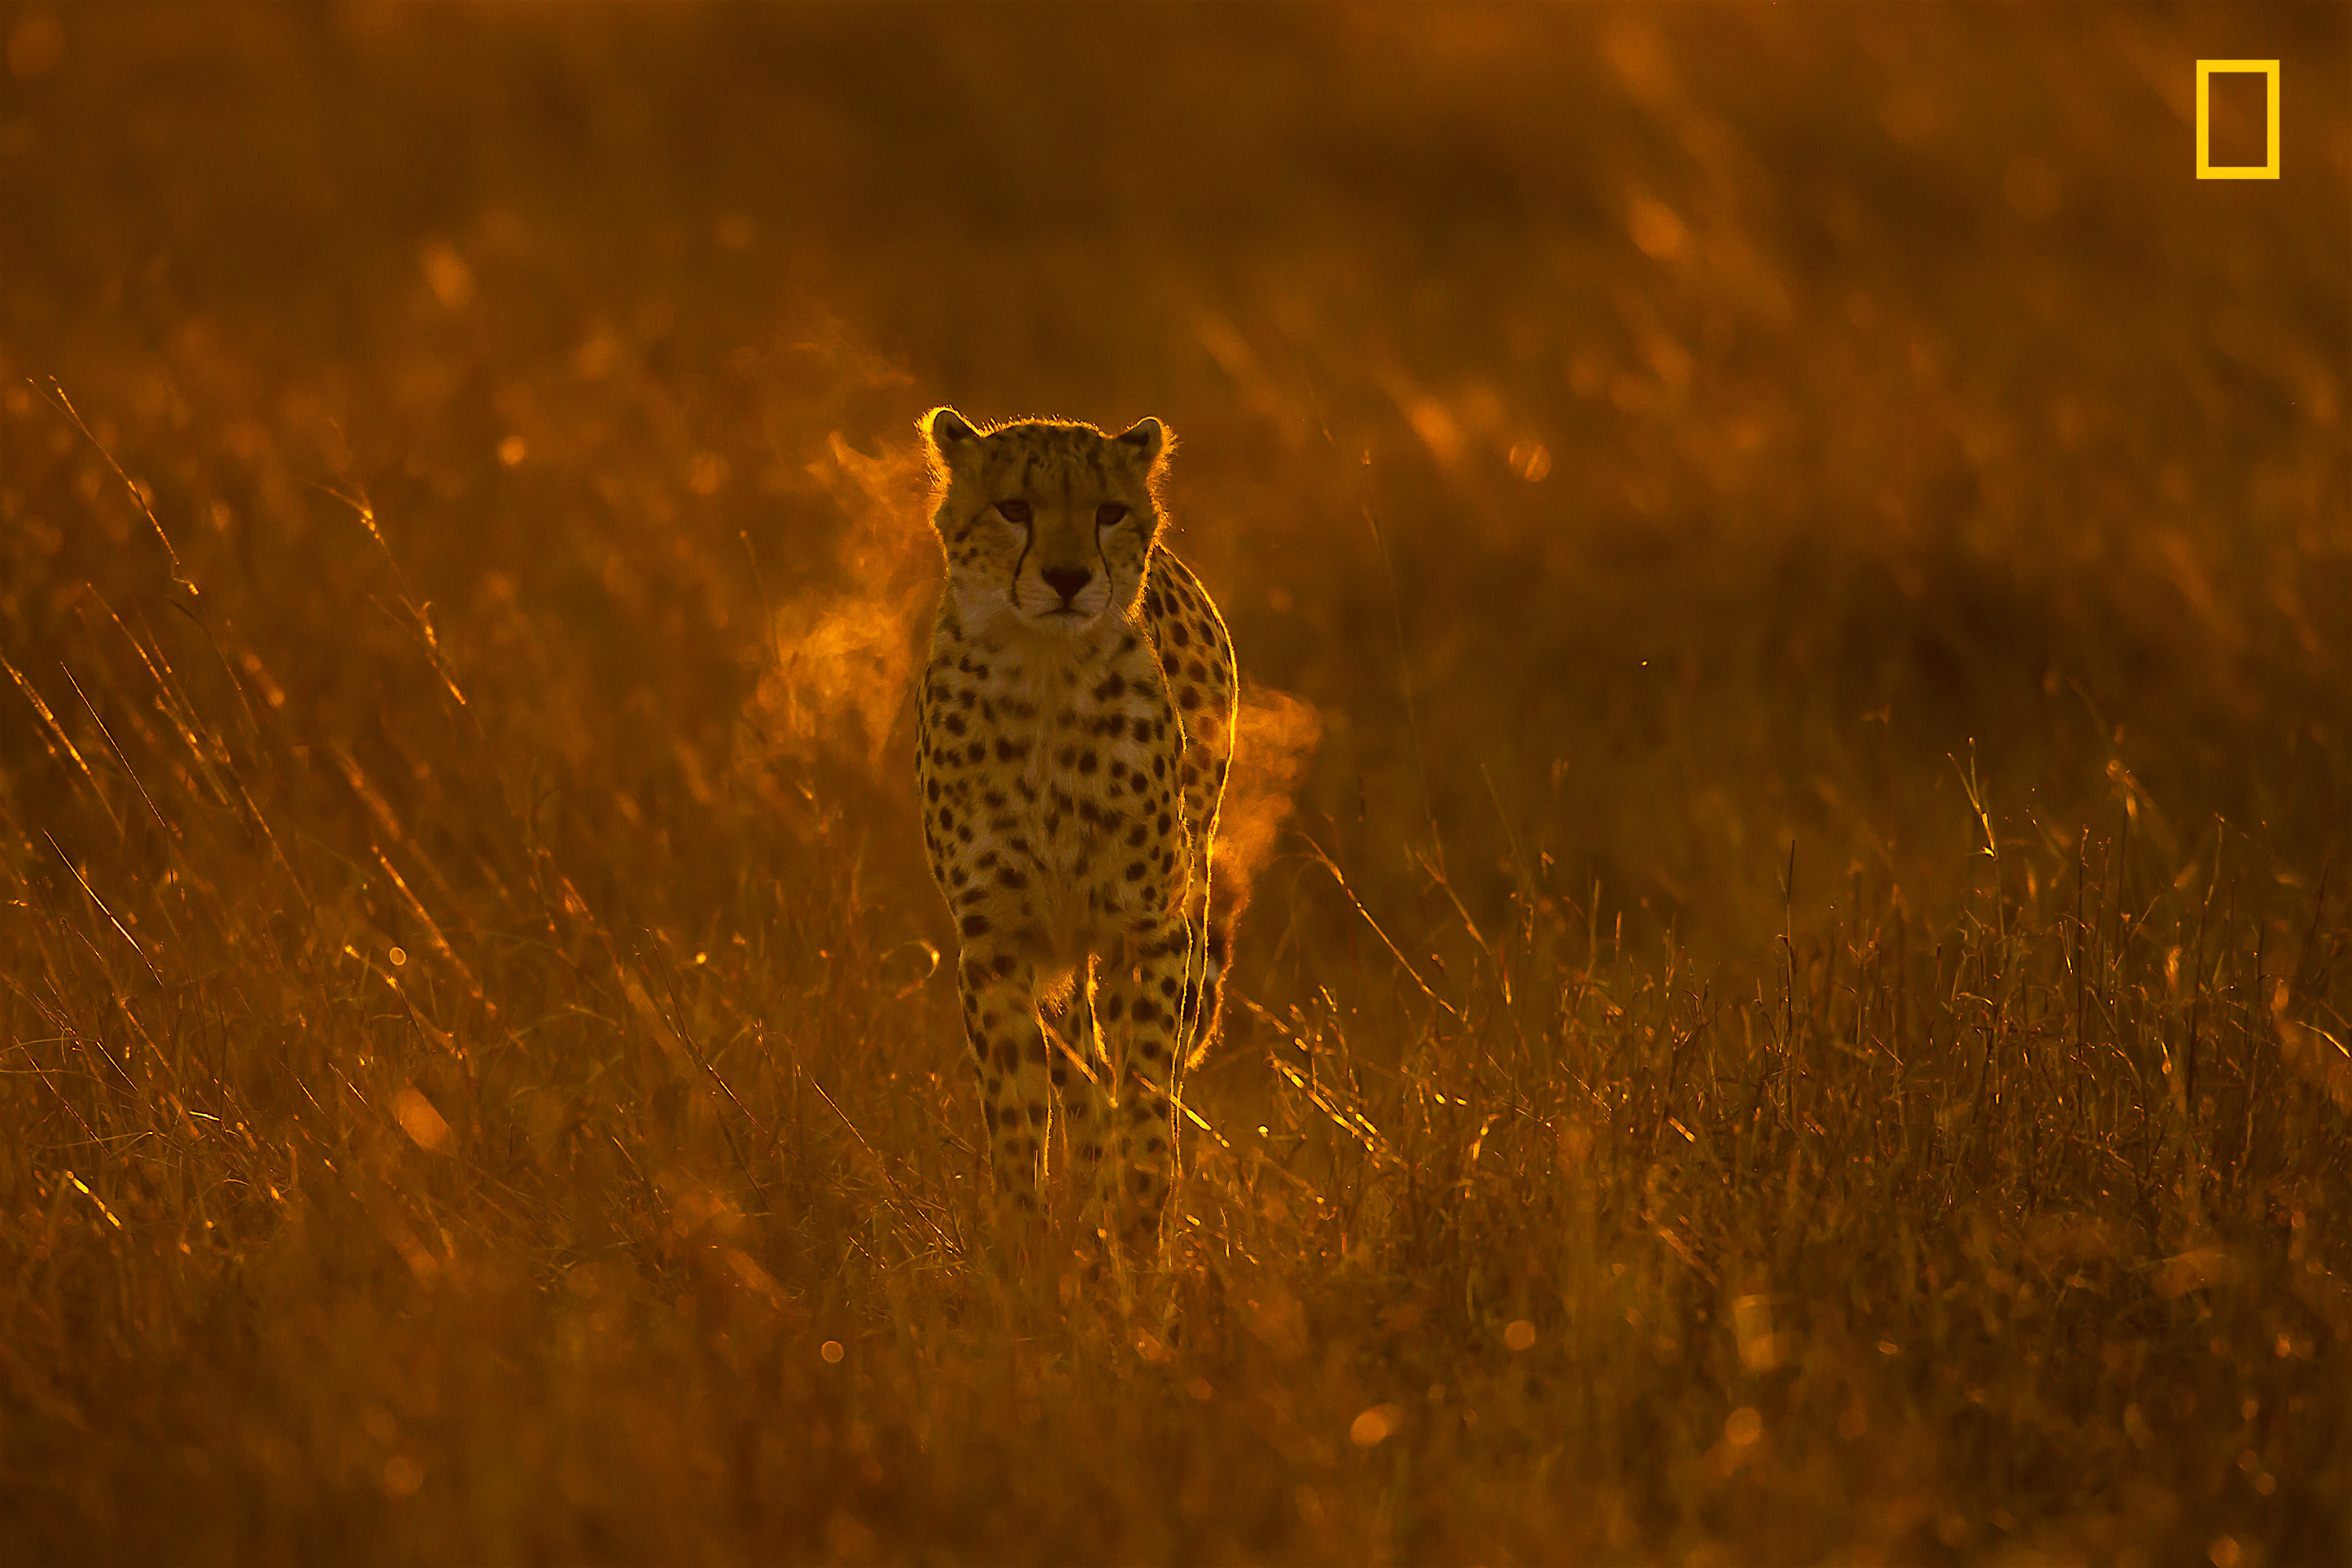 Fire in the Savannah! On a cold winter morning at the savannah, from a distance it looked like a ballof fire! Masai Mara, Africa (Jayaprakash Joghee Bojan/ 2017 National Geographic Nature Photographer of the Year)